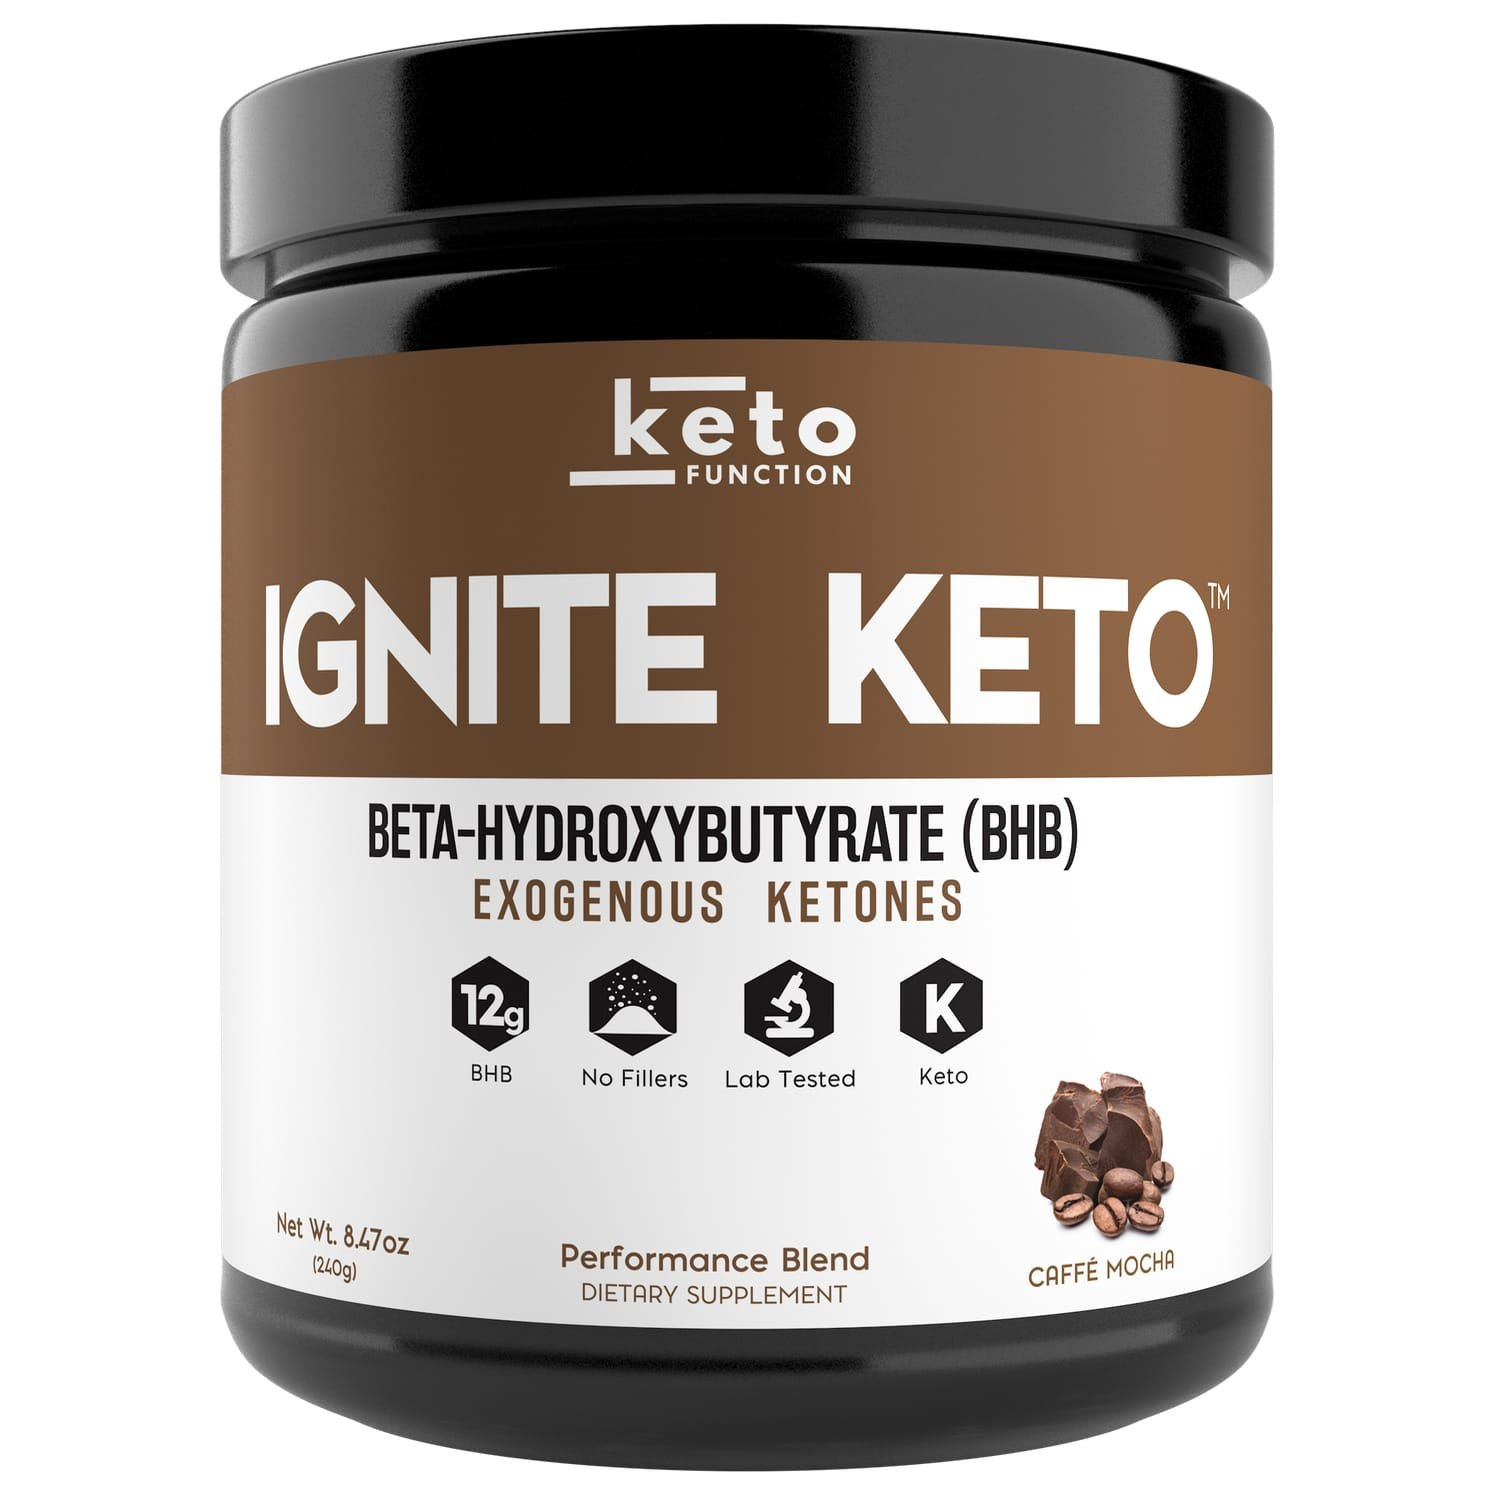 IGNITE KETO BHB Salts - Exogenous Ketones Supplement with 12g Pure BHB - IGNITE Ketosis, Energy, Focus and Fat Burn - Fuel a Ketogenic Diet (Mocha) by Keto Function